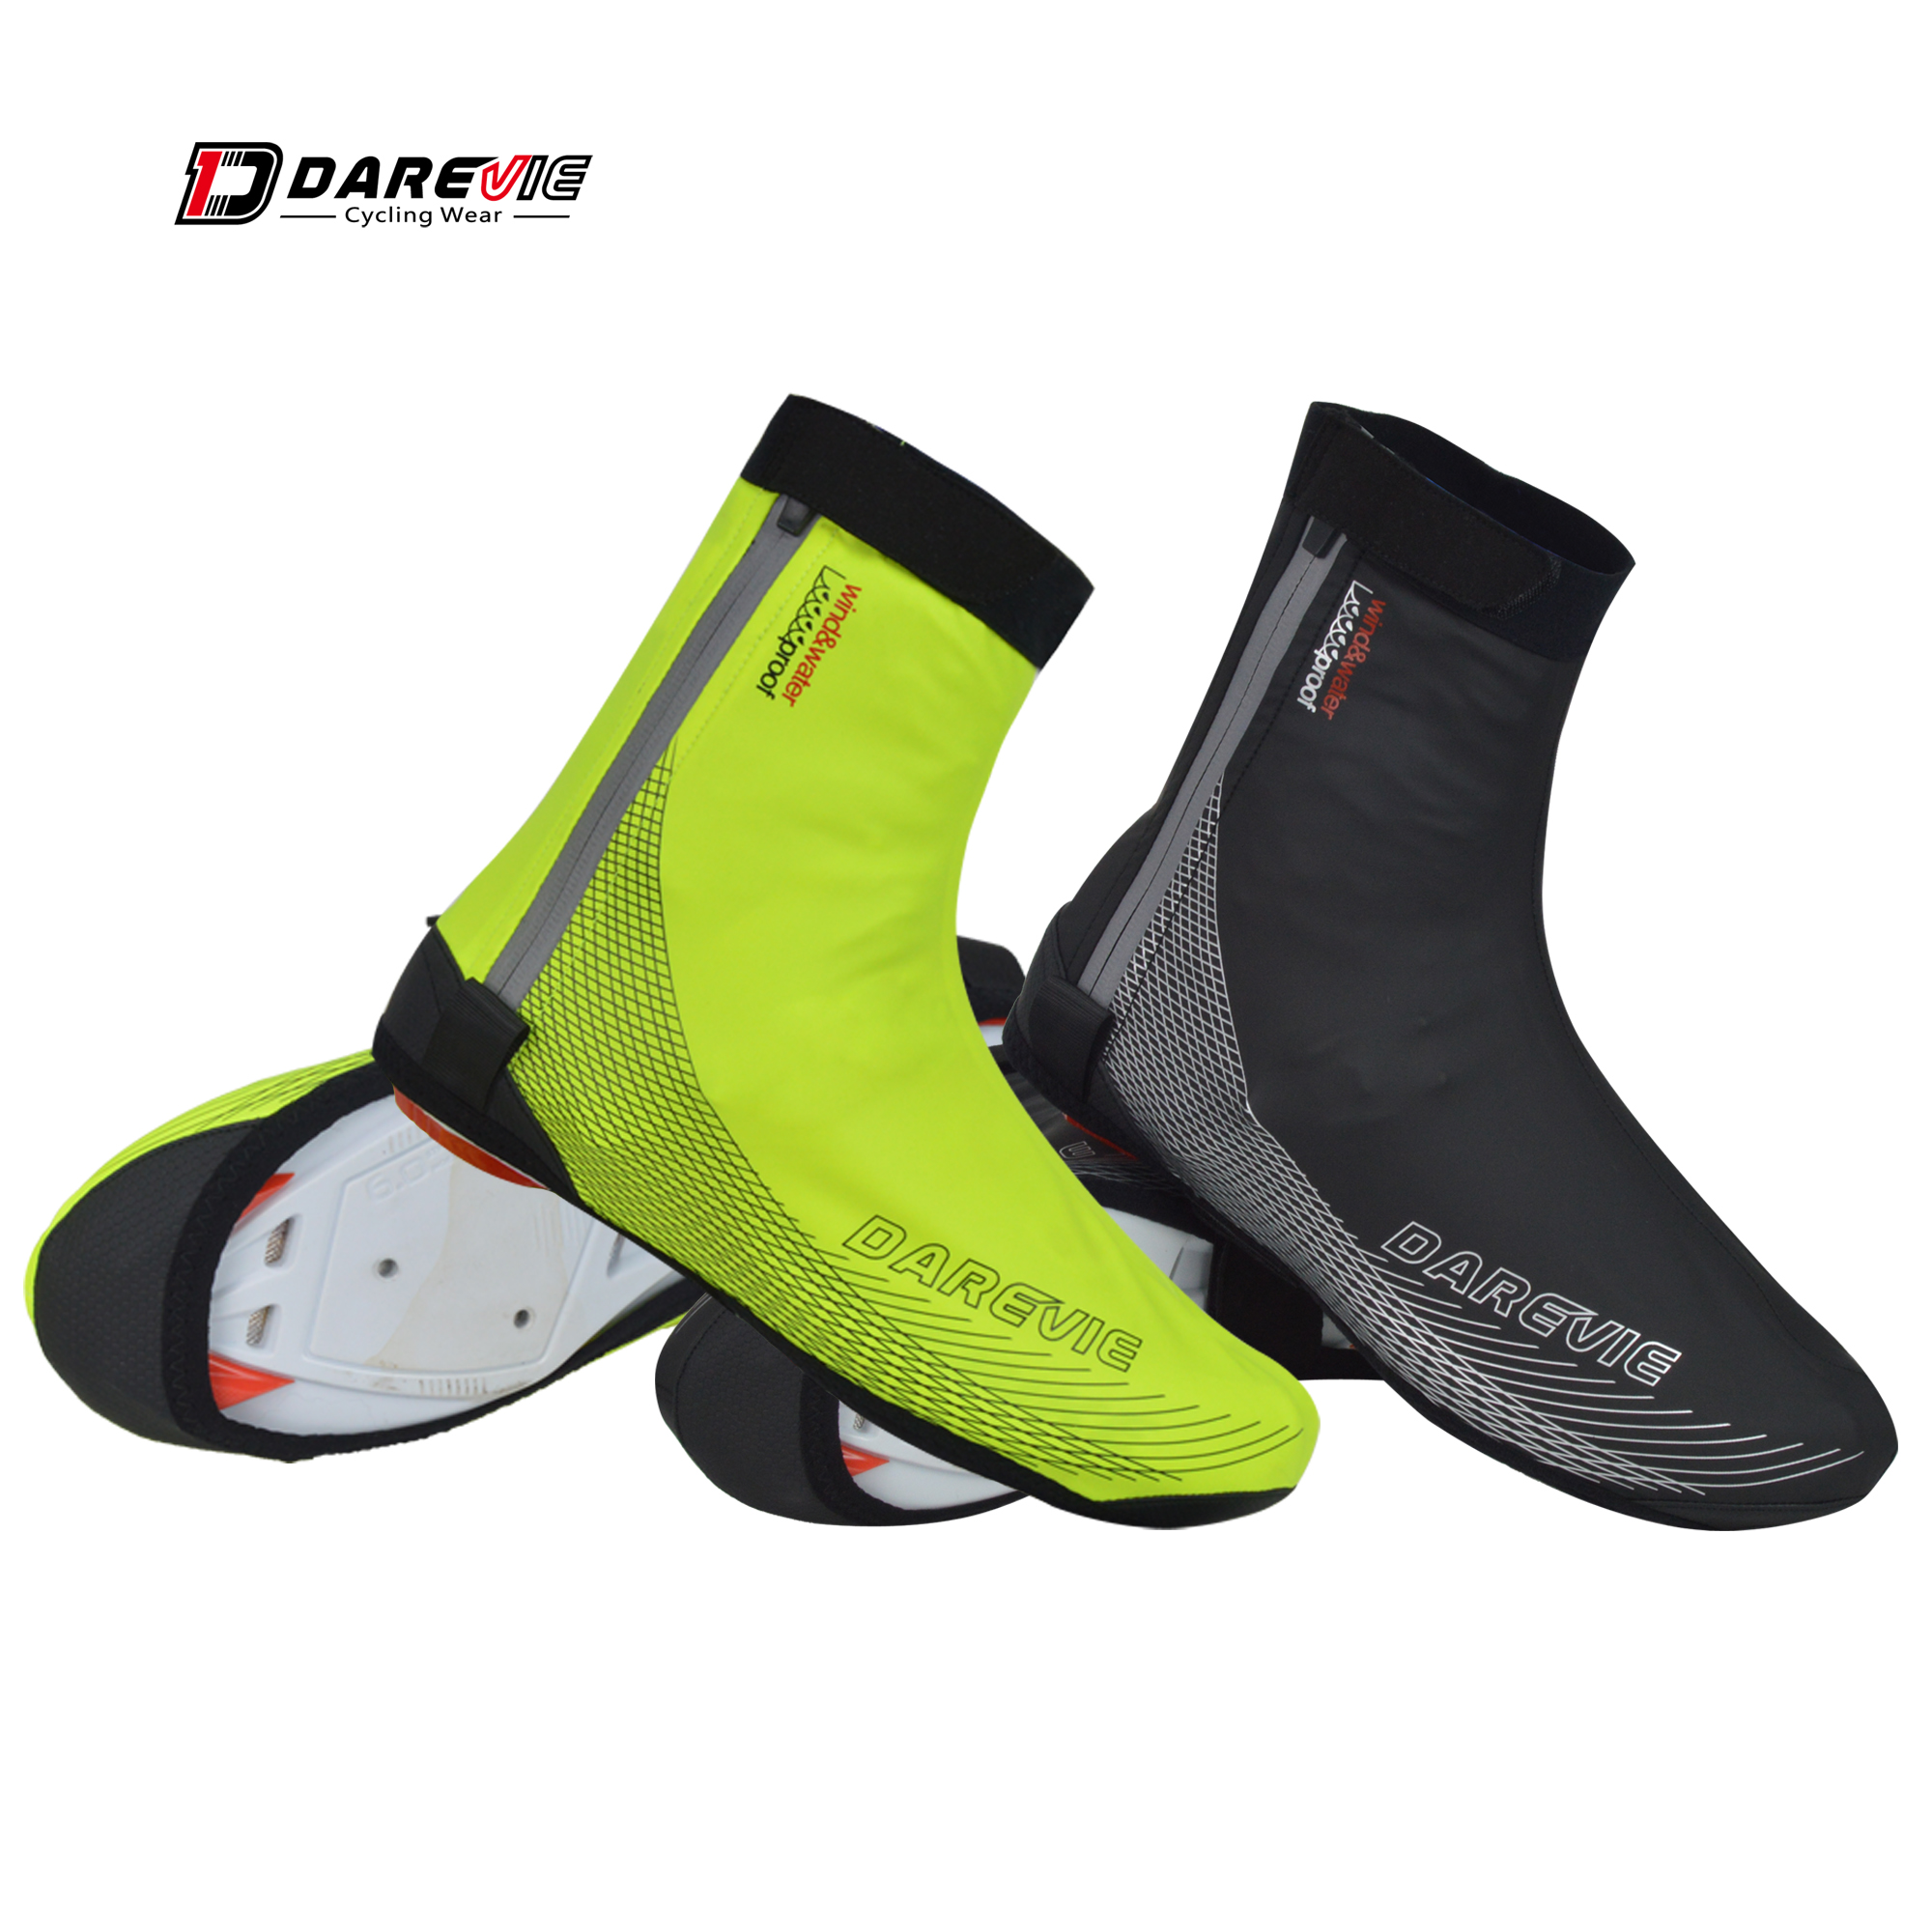 Darevie Cycling Shoes Covers Waterproof Windproof Cycling Shoes Cover Winter Thermal MTB Road Cycling Lock Shoes Cover Slippers